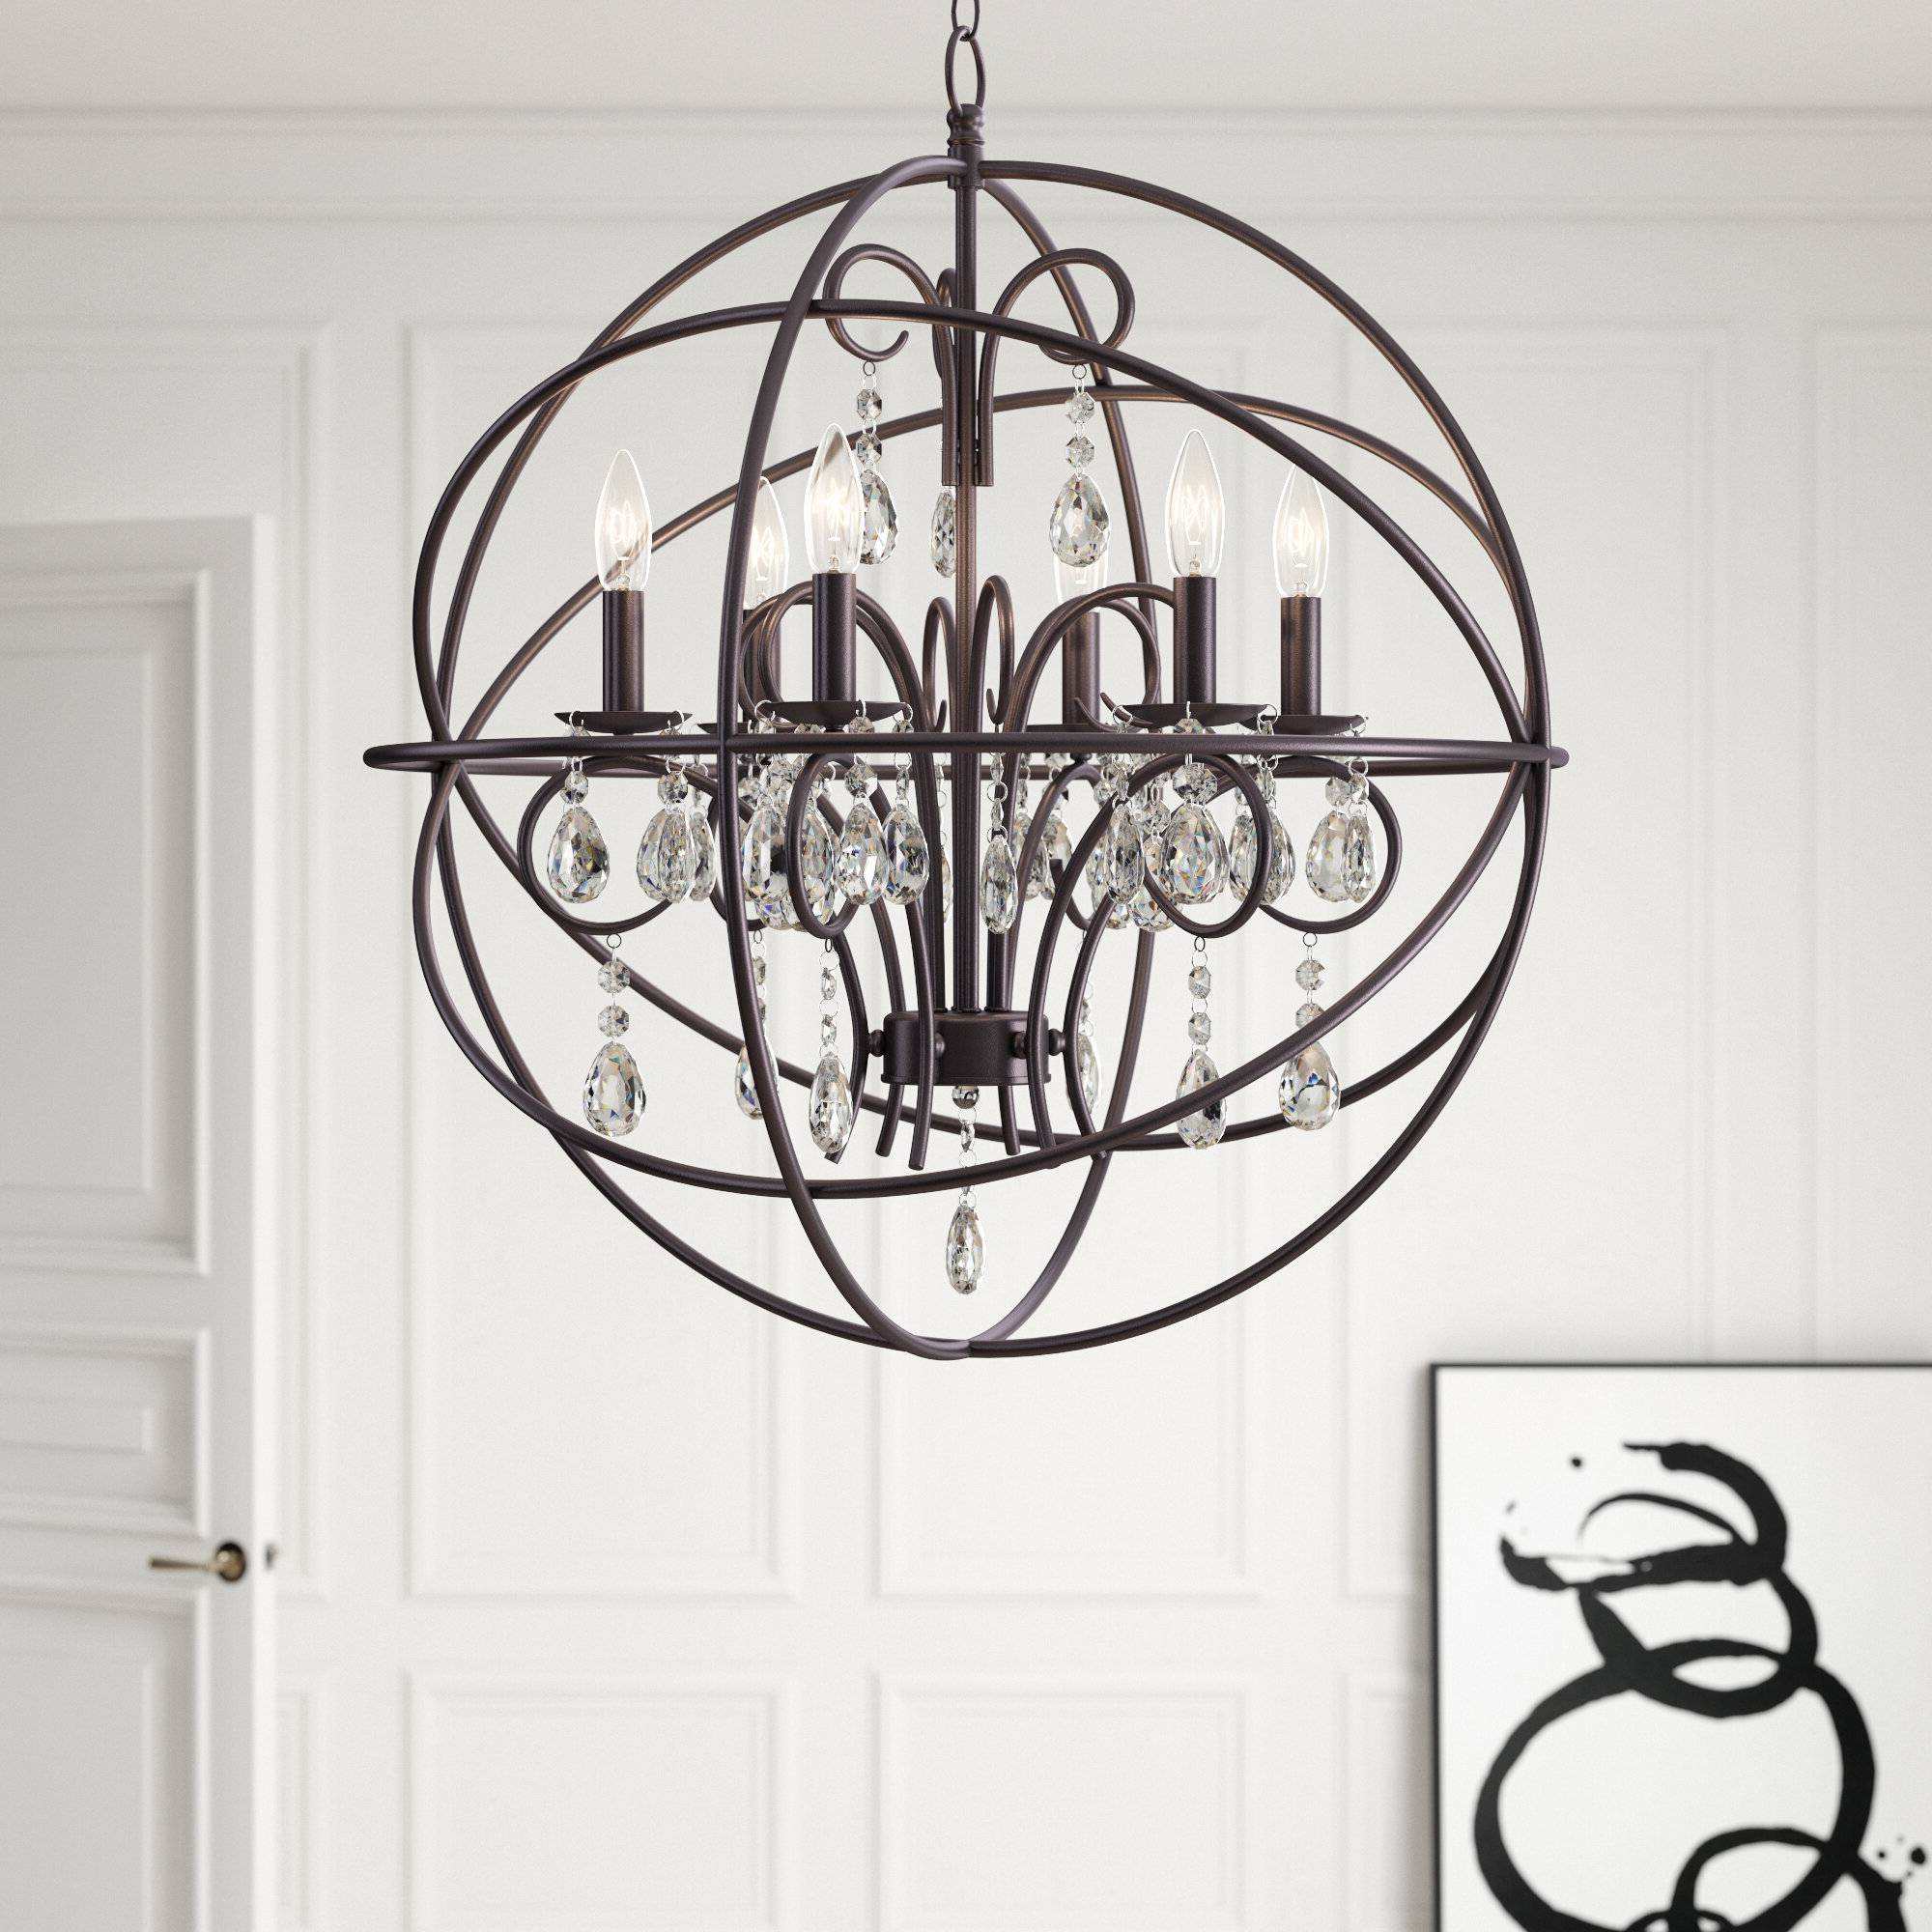 Best And Newest Joon 6 Light Globe Chandeliers Intended For Alden 6 Light Globe Chandelier (View 6 of 25)